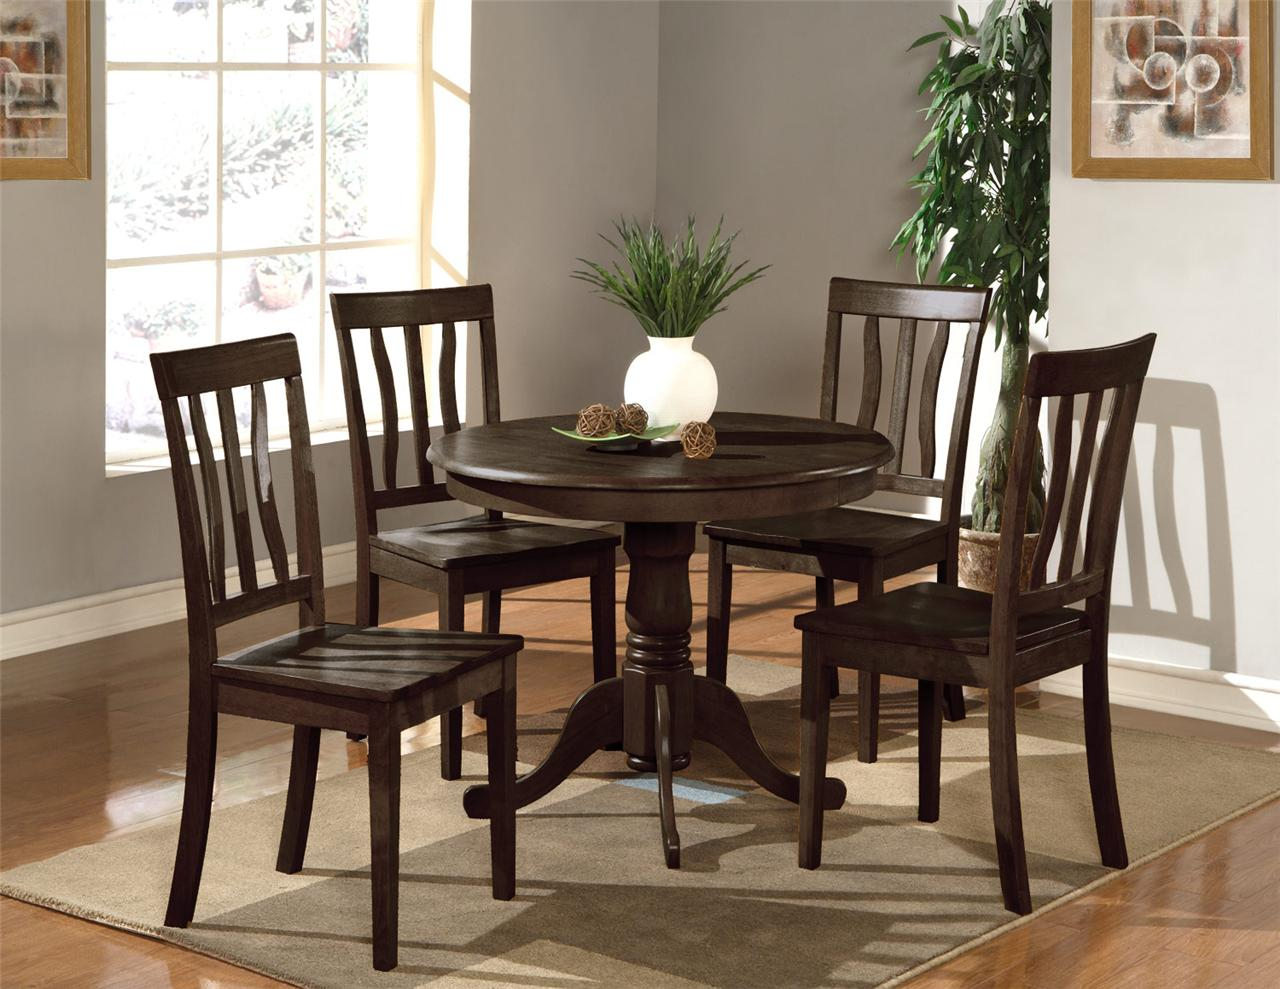 5 Pc Round Table Dinette Kitchen Table Amp 4 Wood Or Padded